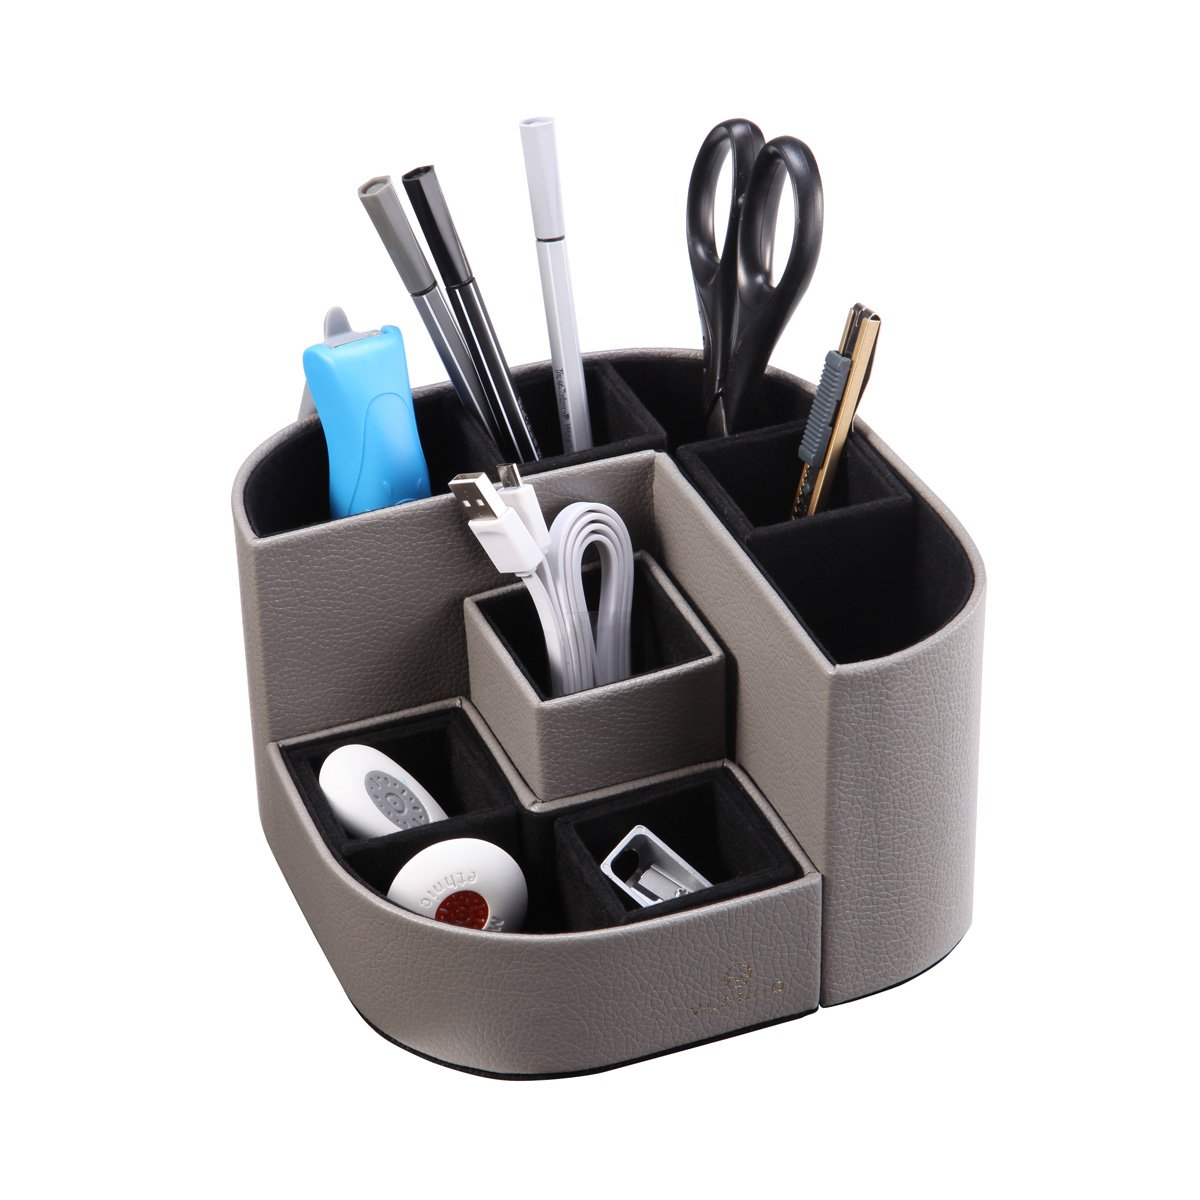 Vlando VPACK Magnet Desk Organizer Pen Holder - Office Supplies Desktop Stationery Gadgets Holder Storage Box (Pebble Grey)